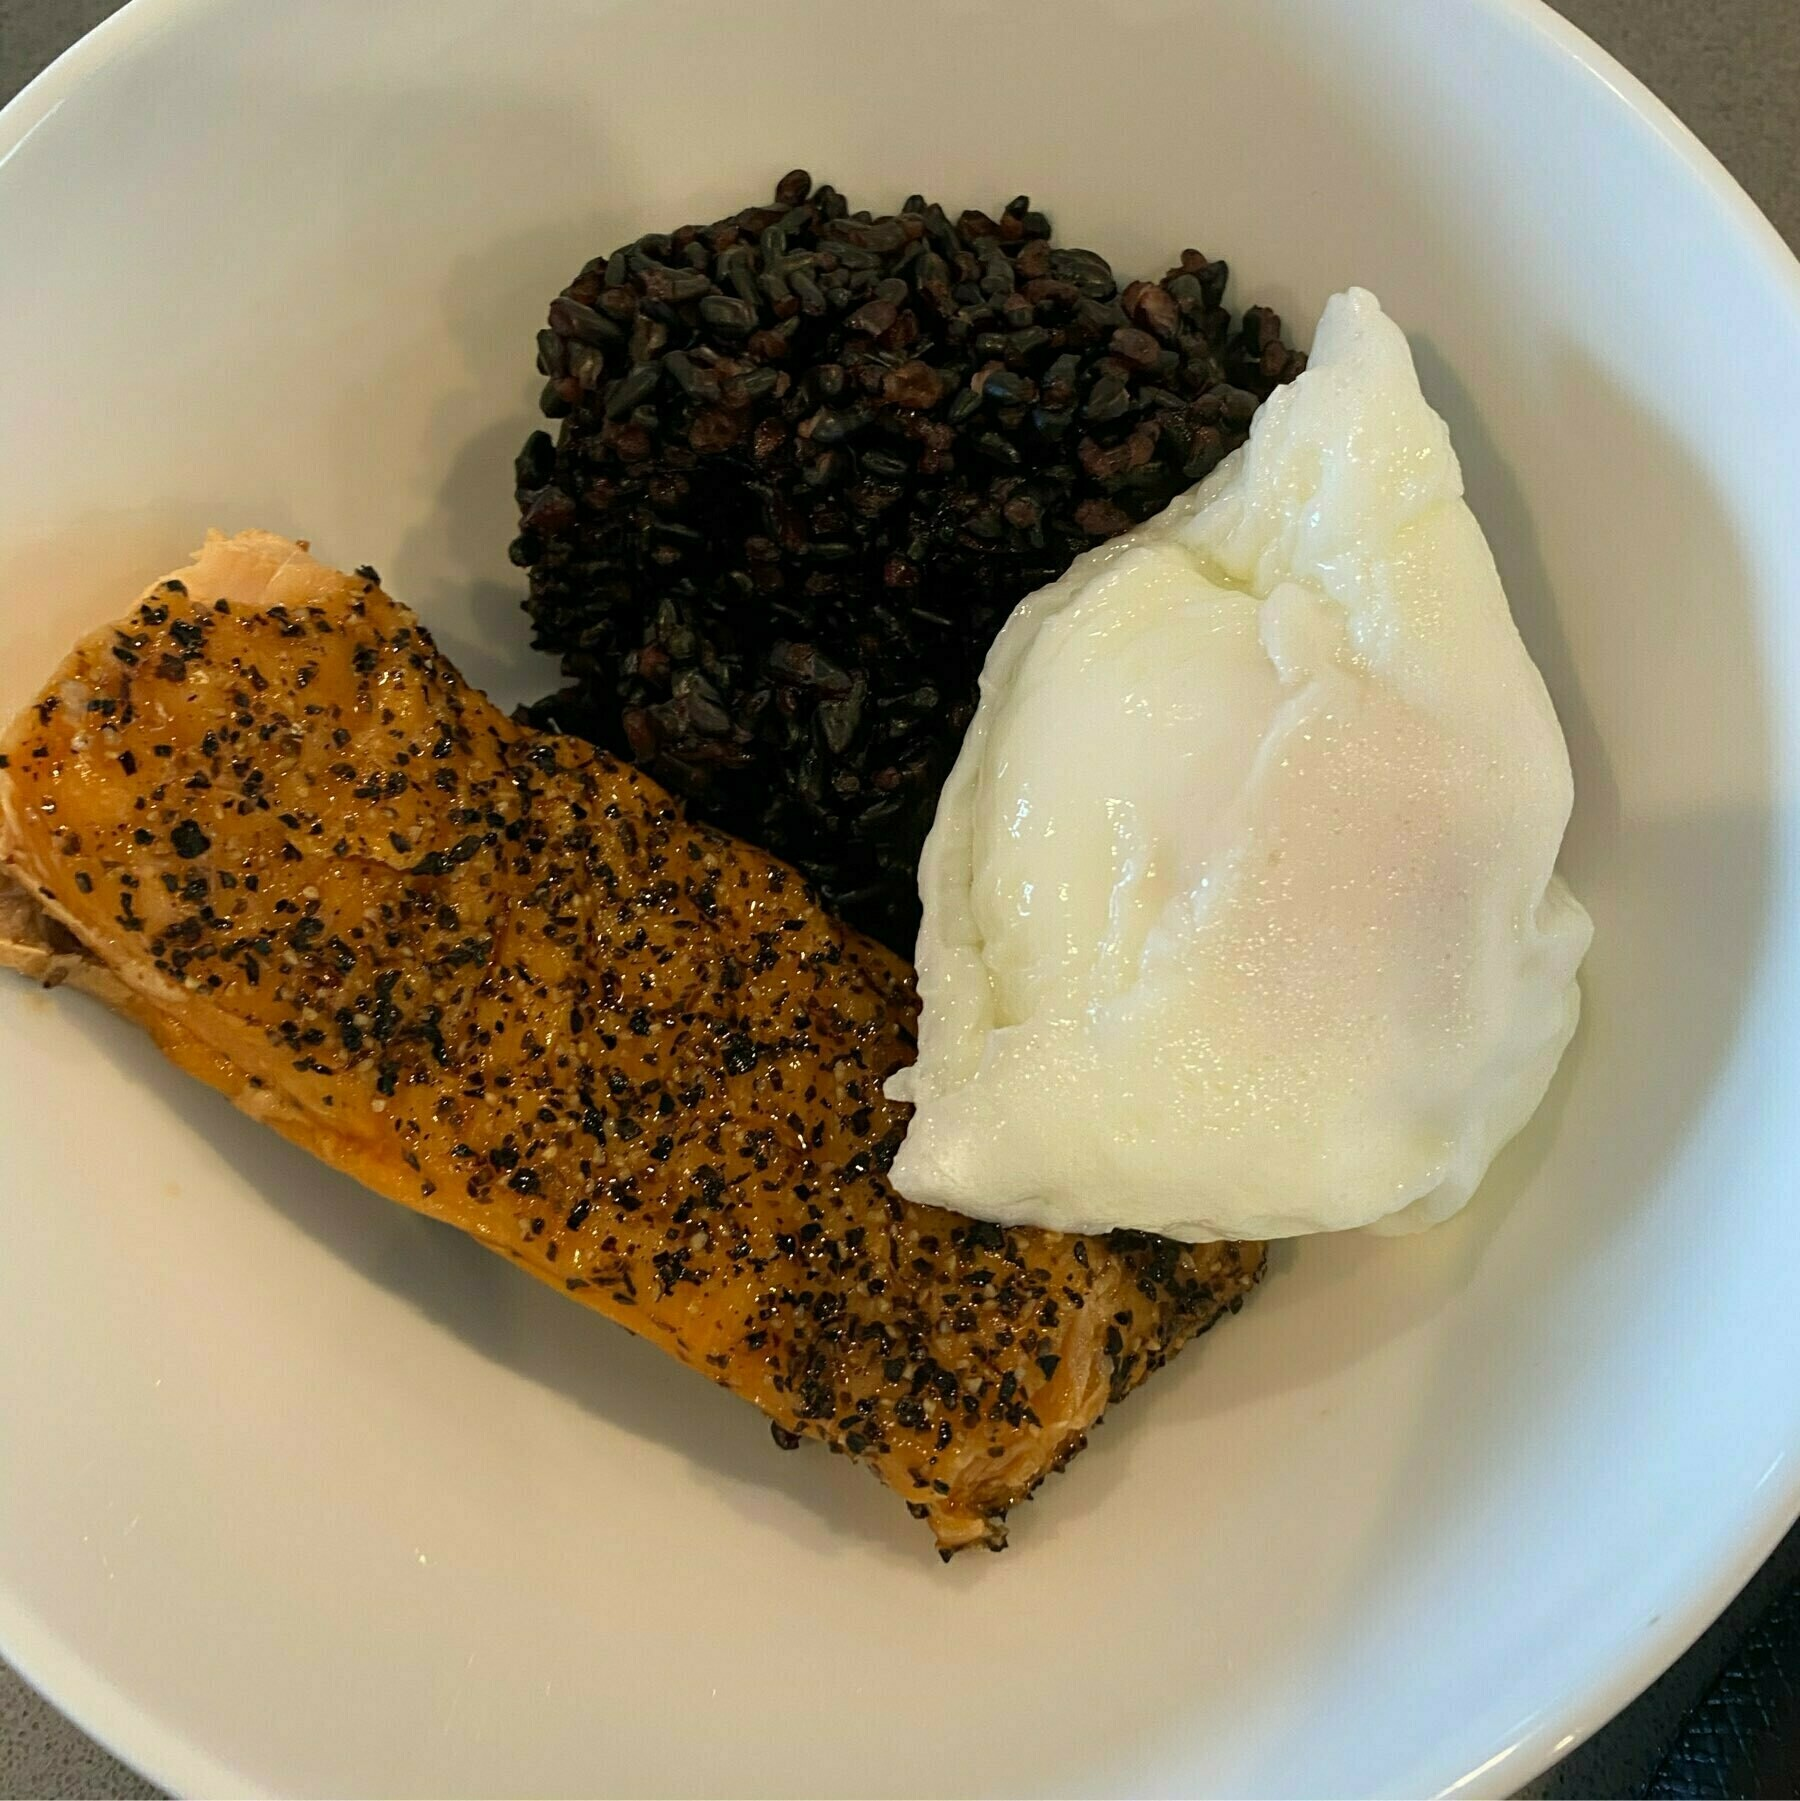 Forbidden rice, roasted salmon, and a poached egg.